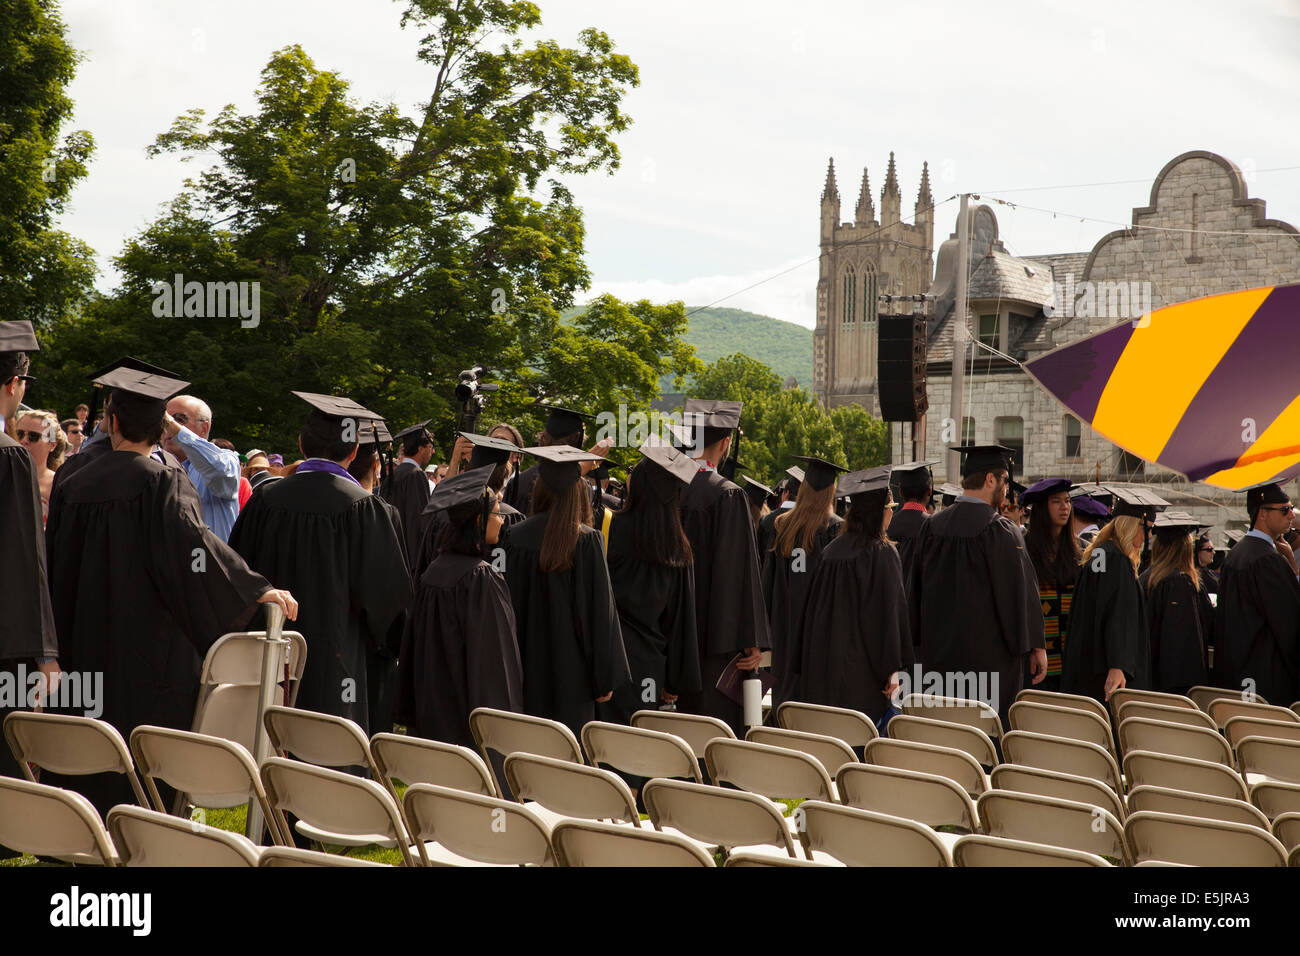 Graduating students parade into the seating area before their graduation ceremony  at Williams College  in Williamstown, - Stock Image